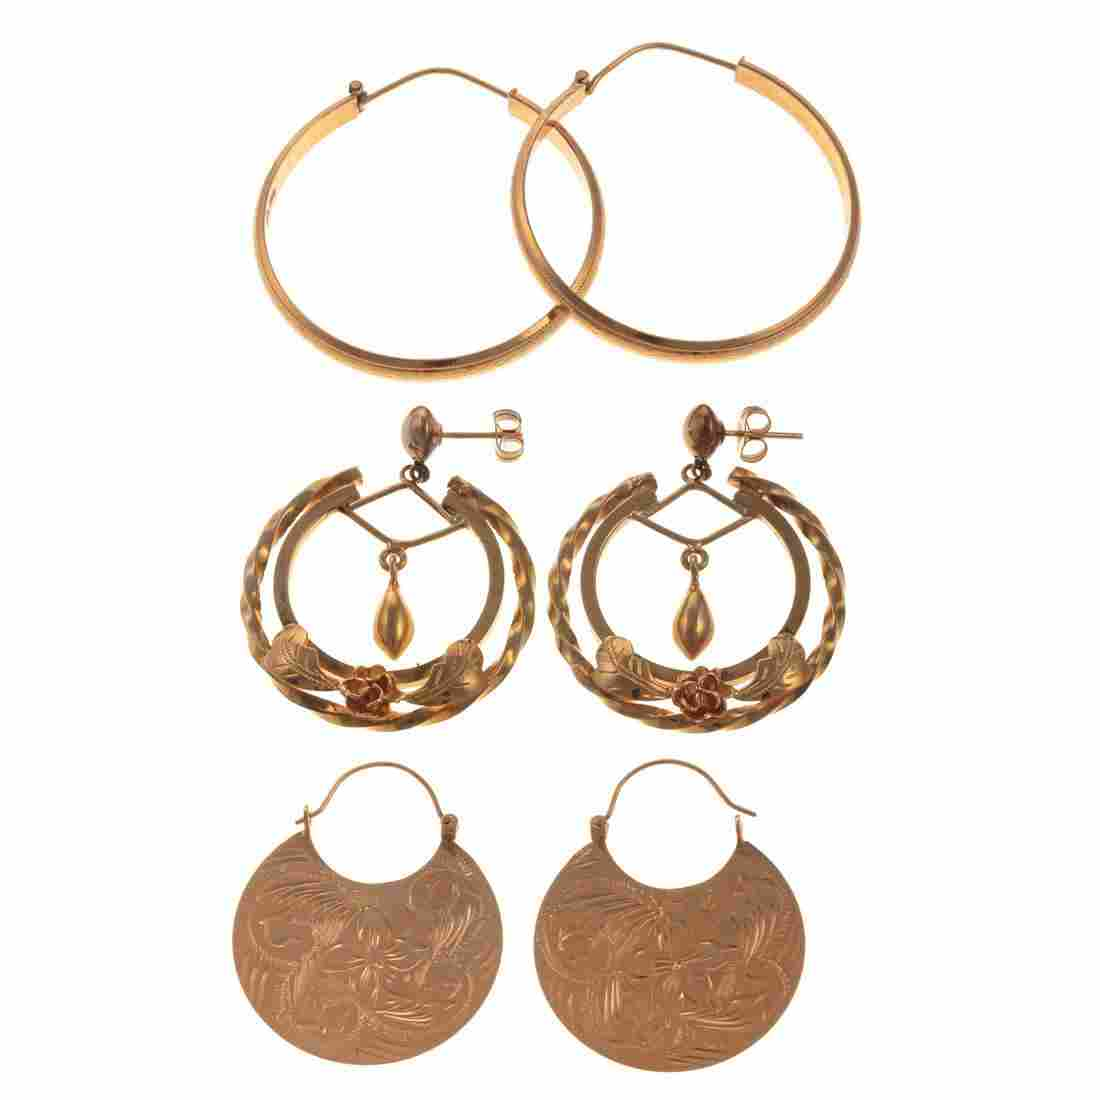 A Trio of Ladies Hoop Earrings in Gold